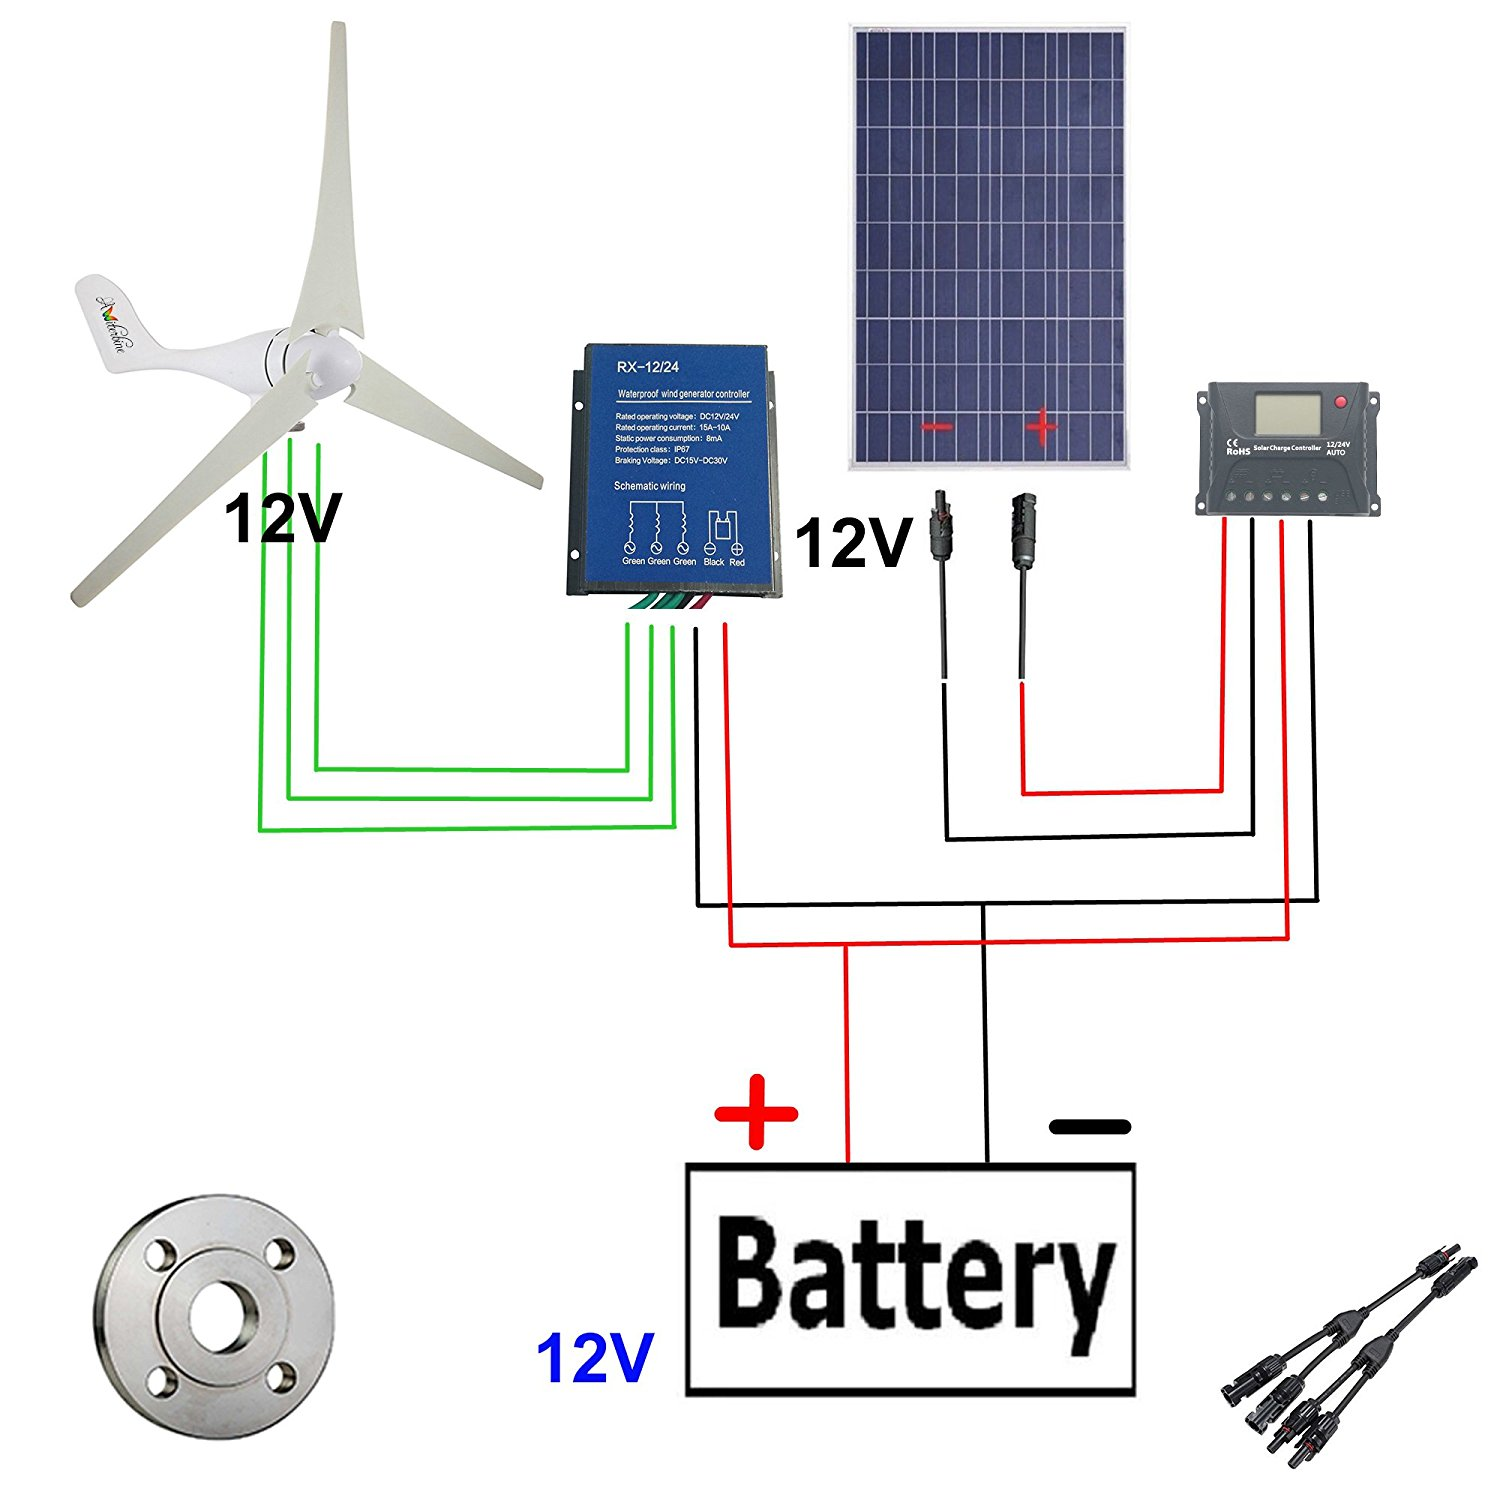 buy 500w wind solar power ac 12v 400w wind turbine generator kit500w wind solar power ac 12v 400w wind turbine generator kit 12v 100w poly